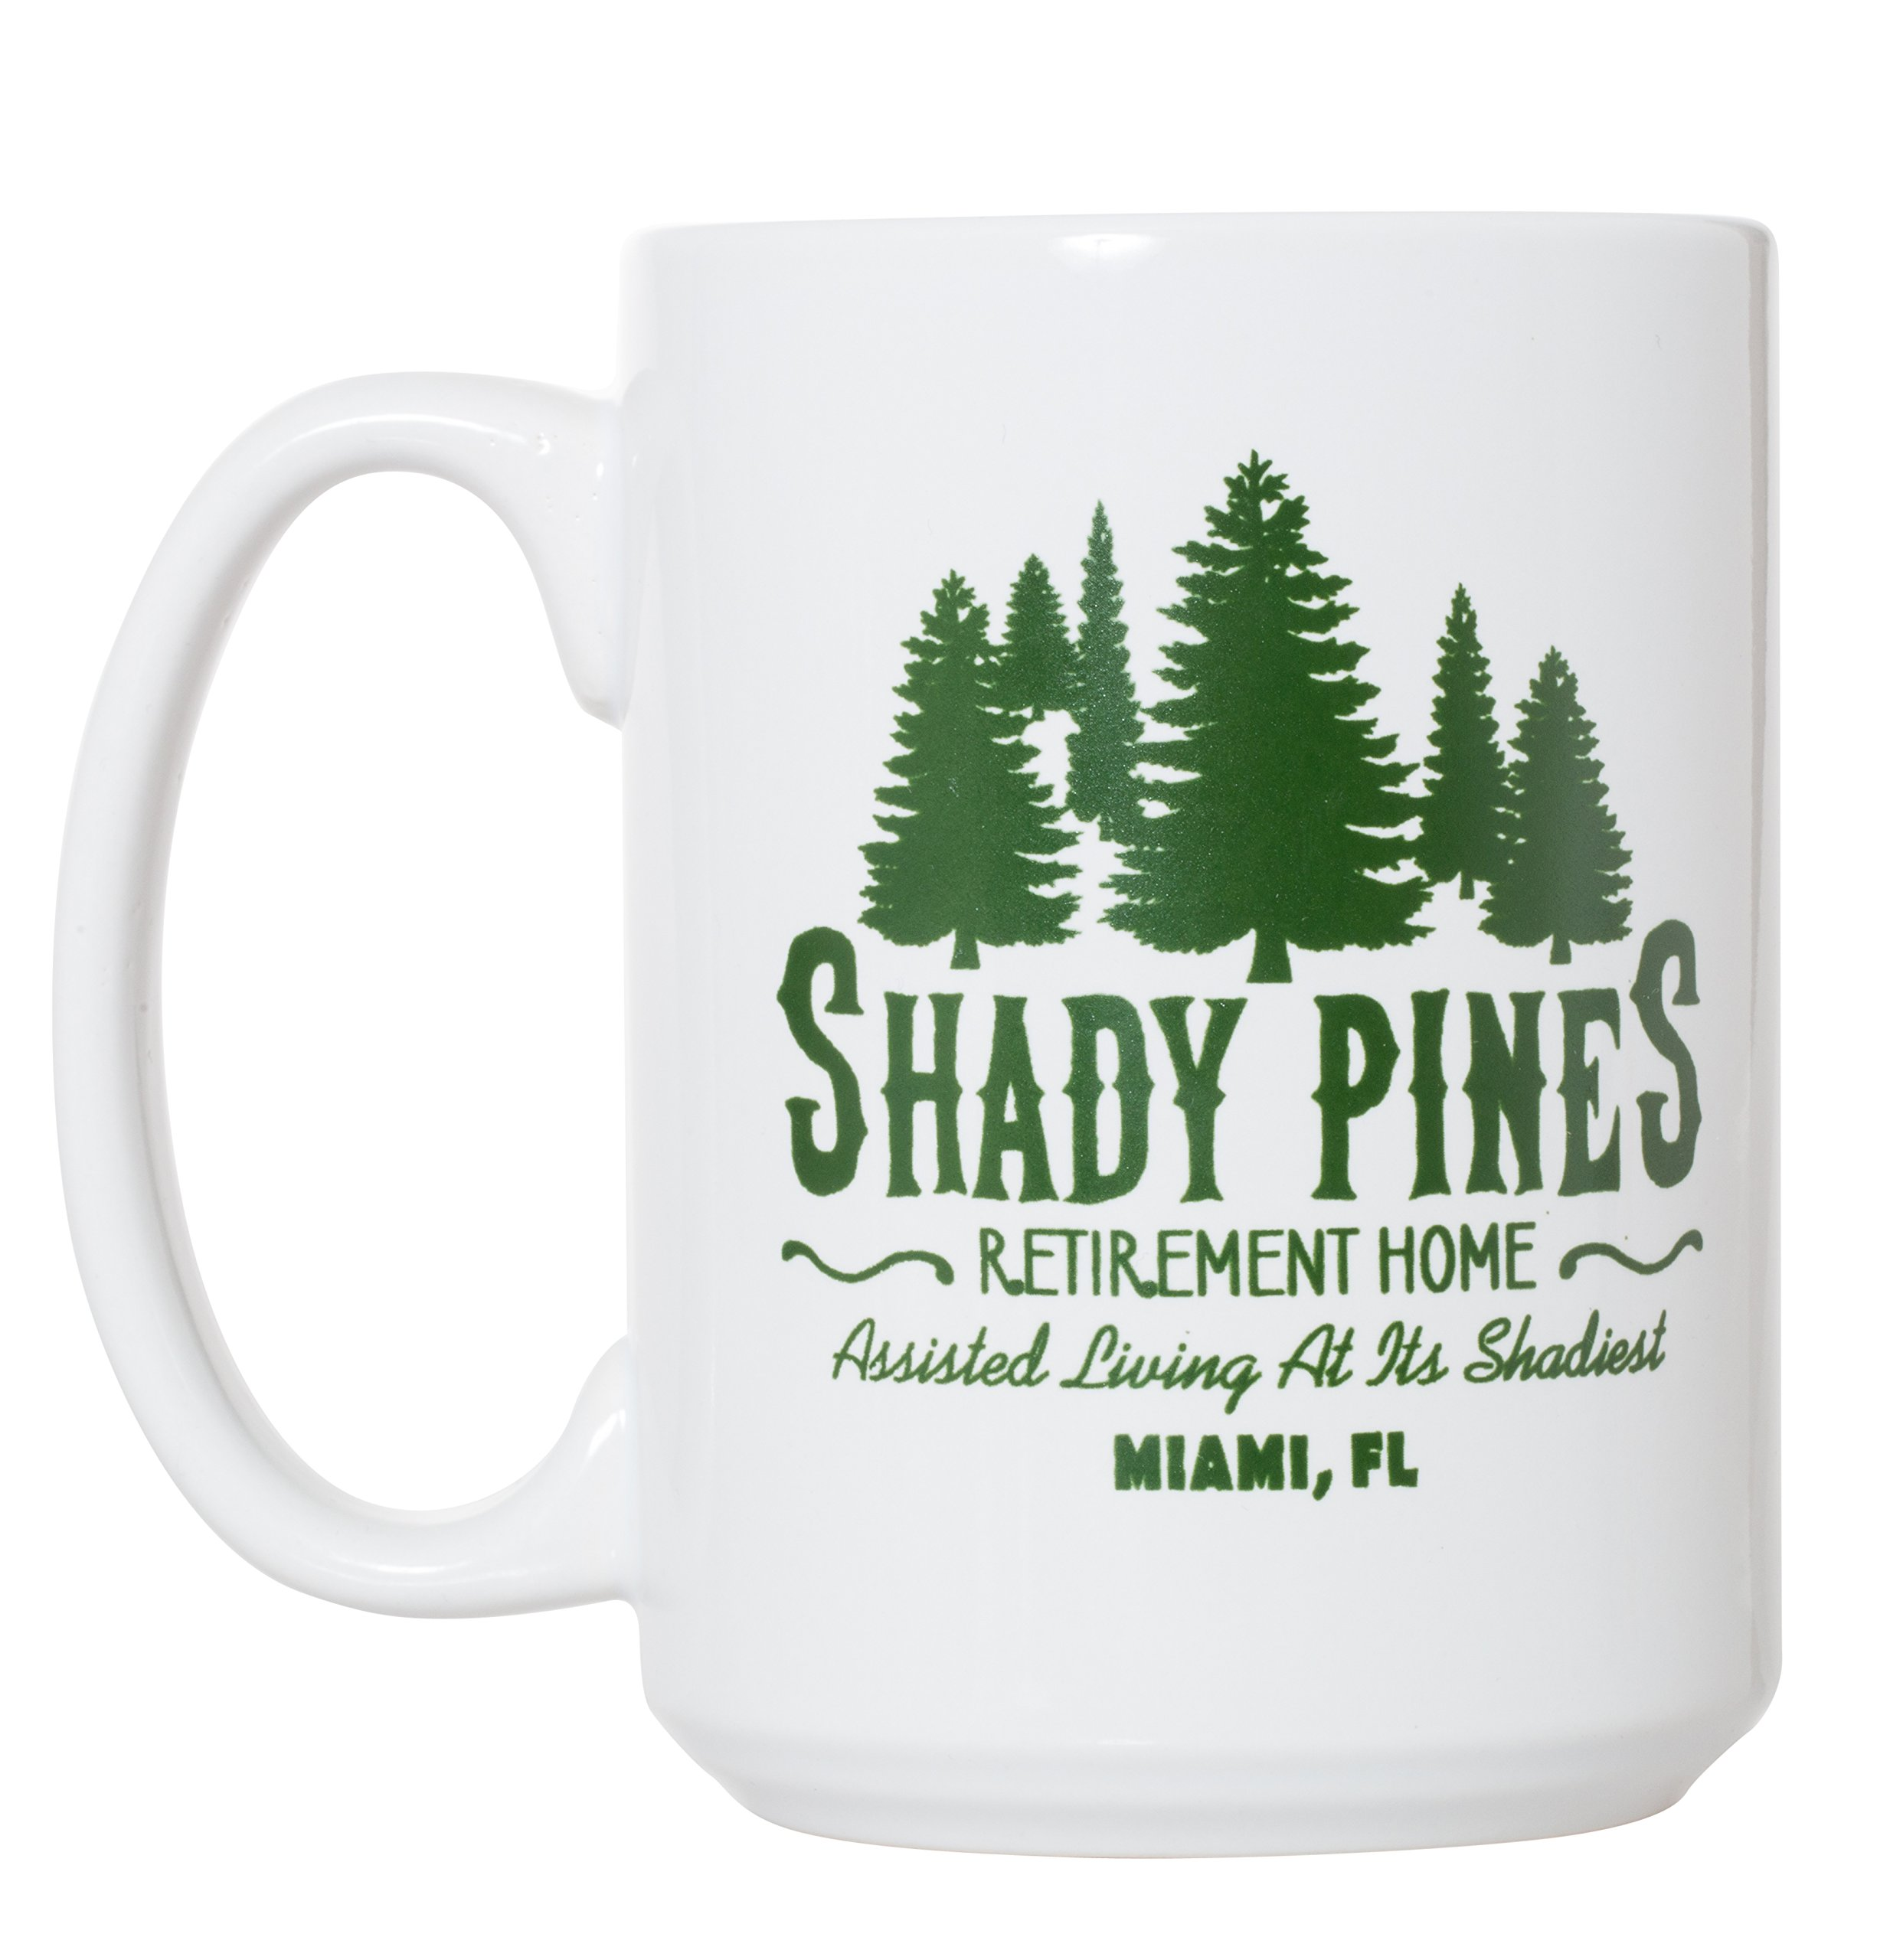 Shady Pines Retirement Home Mug Golden Girls Inspired - 15oz Deluxe Double-Sided Coffee Tea Mug (White)